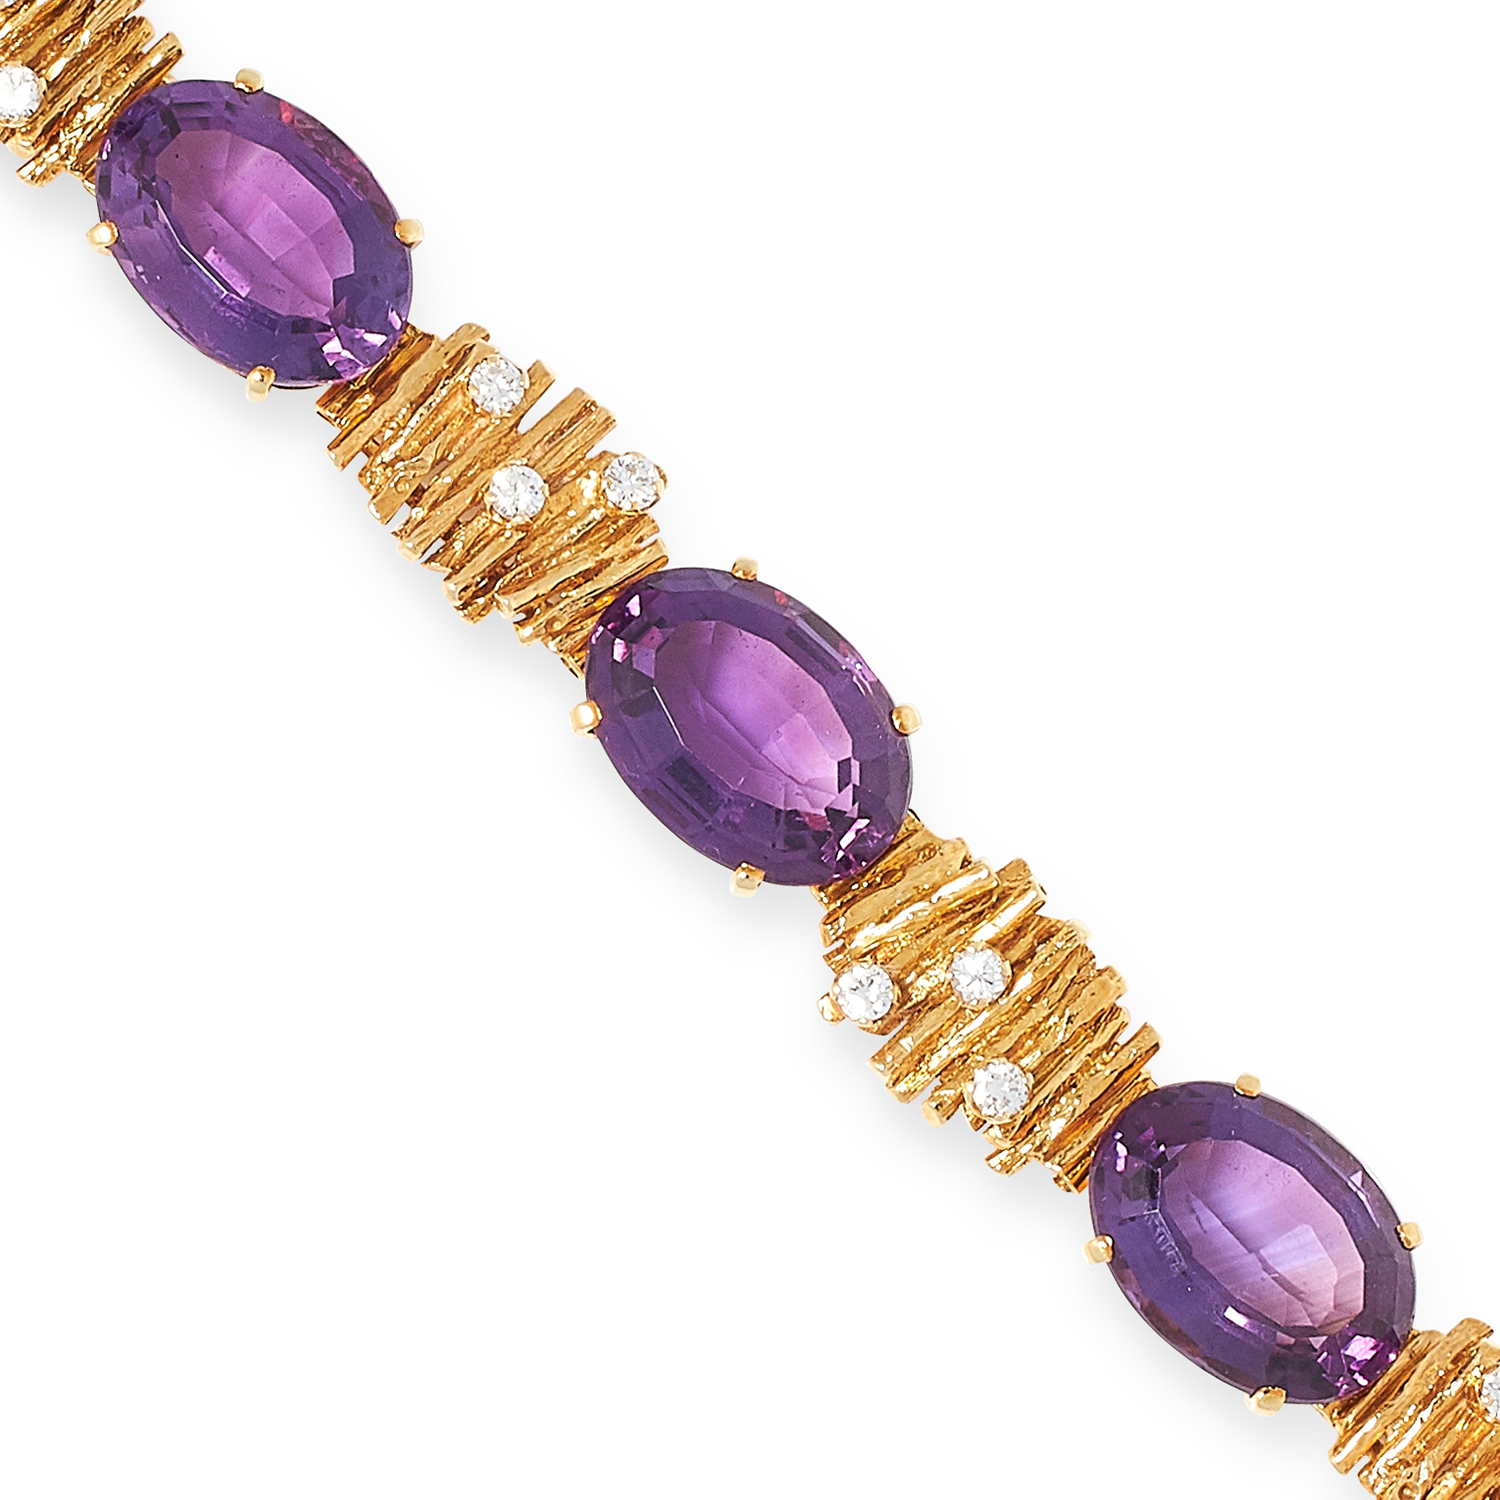 AN AMETHYST AND DIAMOND BRACELET, SEARLE & CO set with oval cut amethysts and round cut diamonds - Image 2 of 2